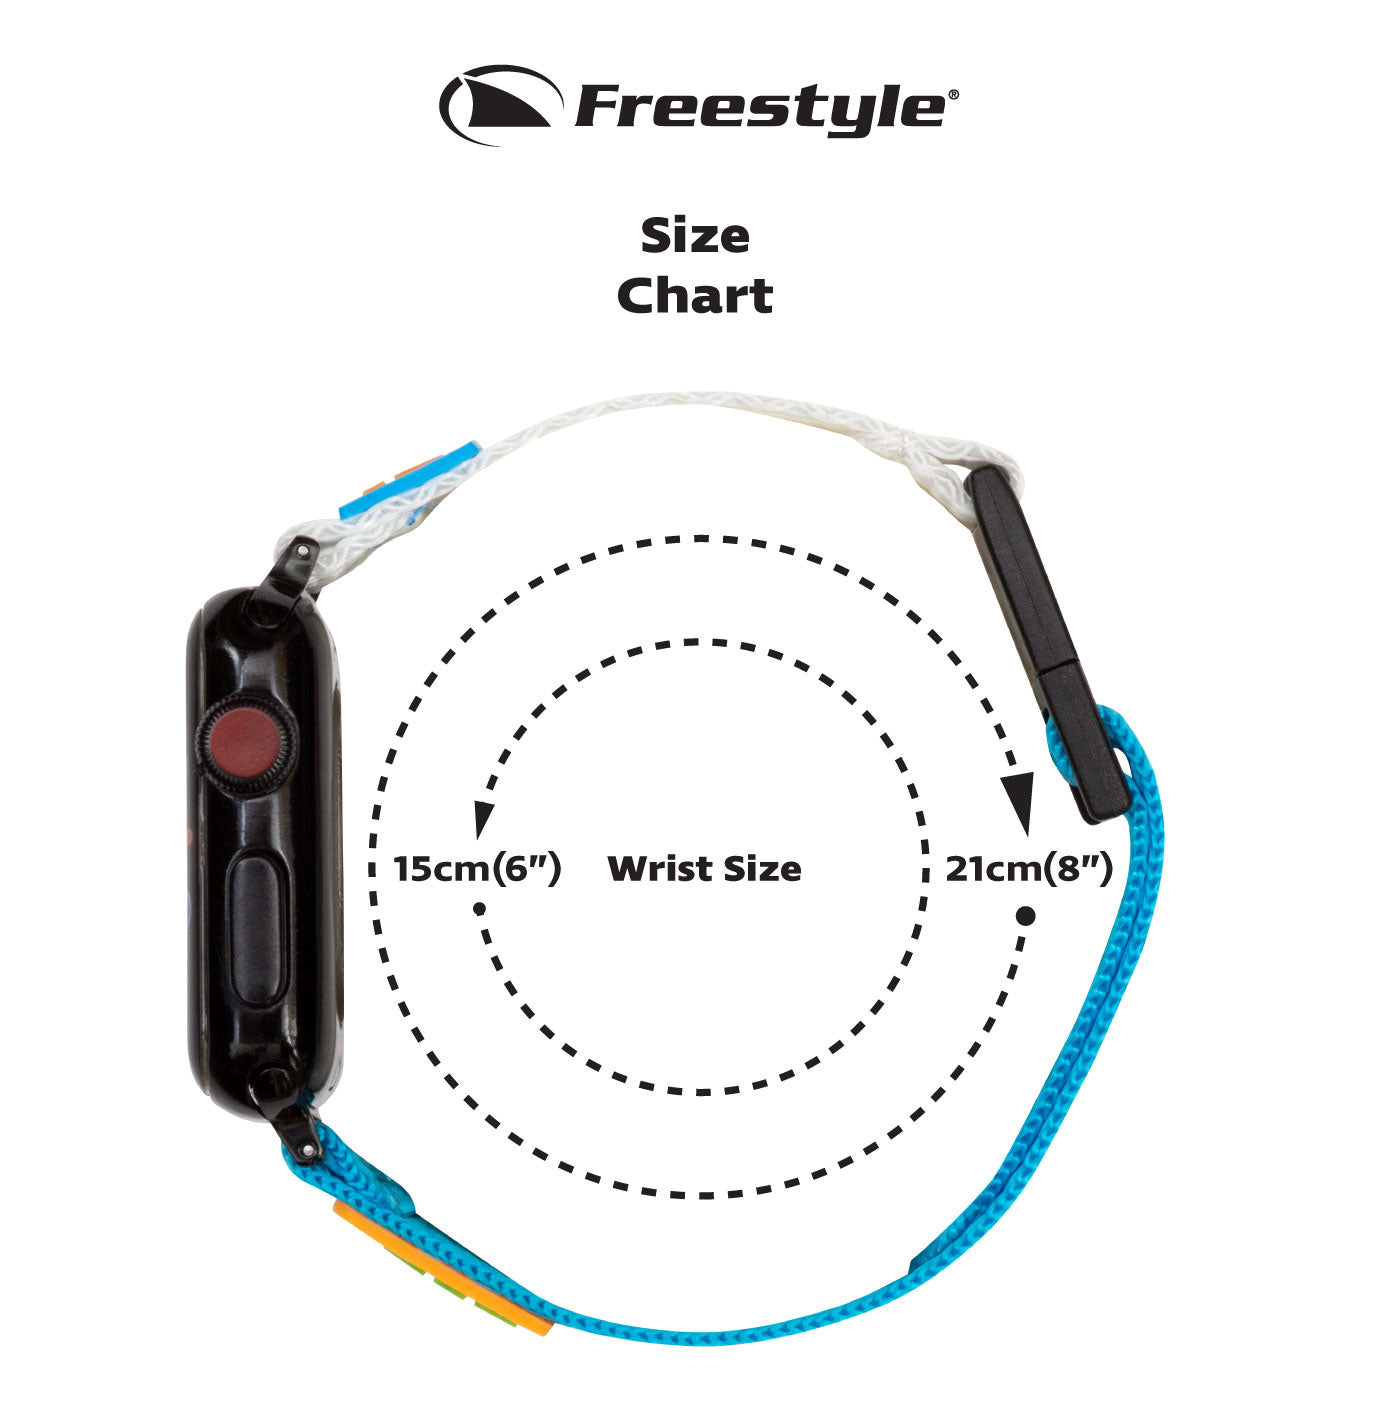 Freestyle Apple Watch Strap Size Guide